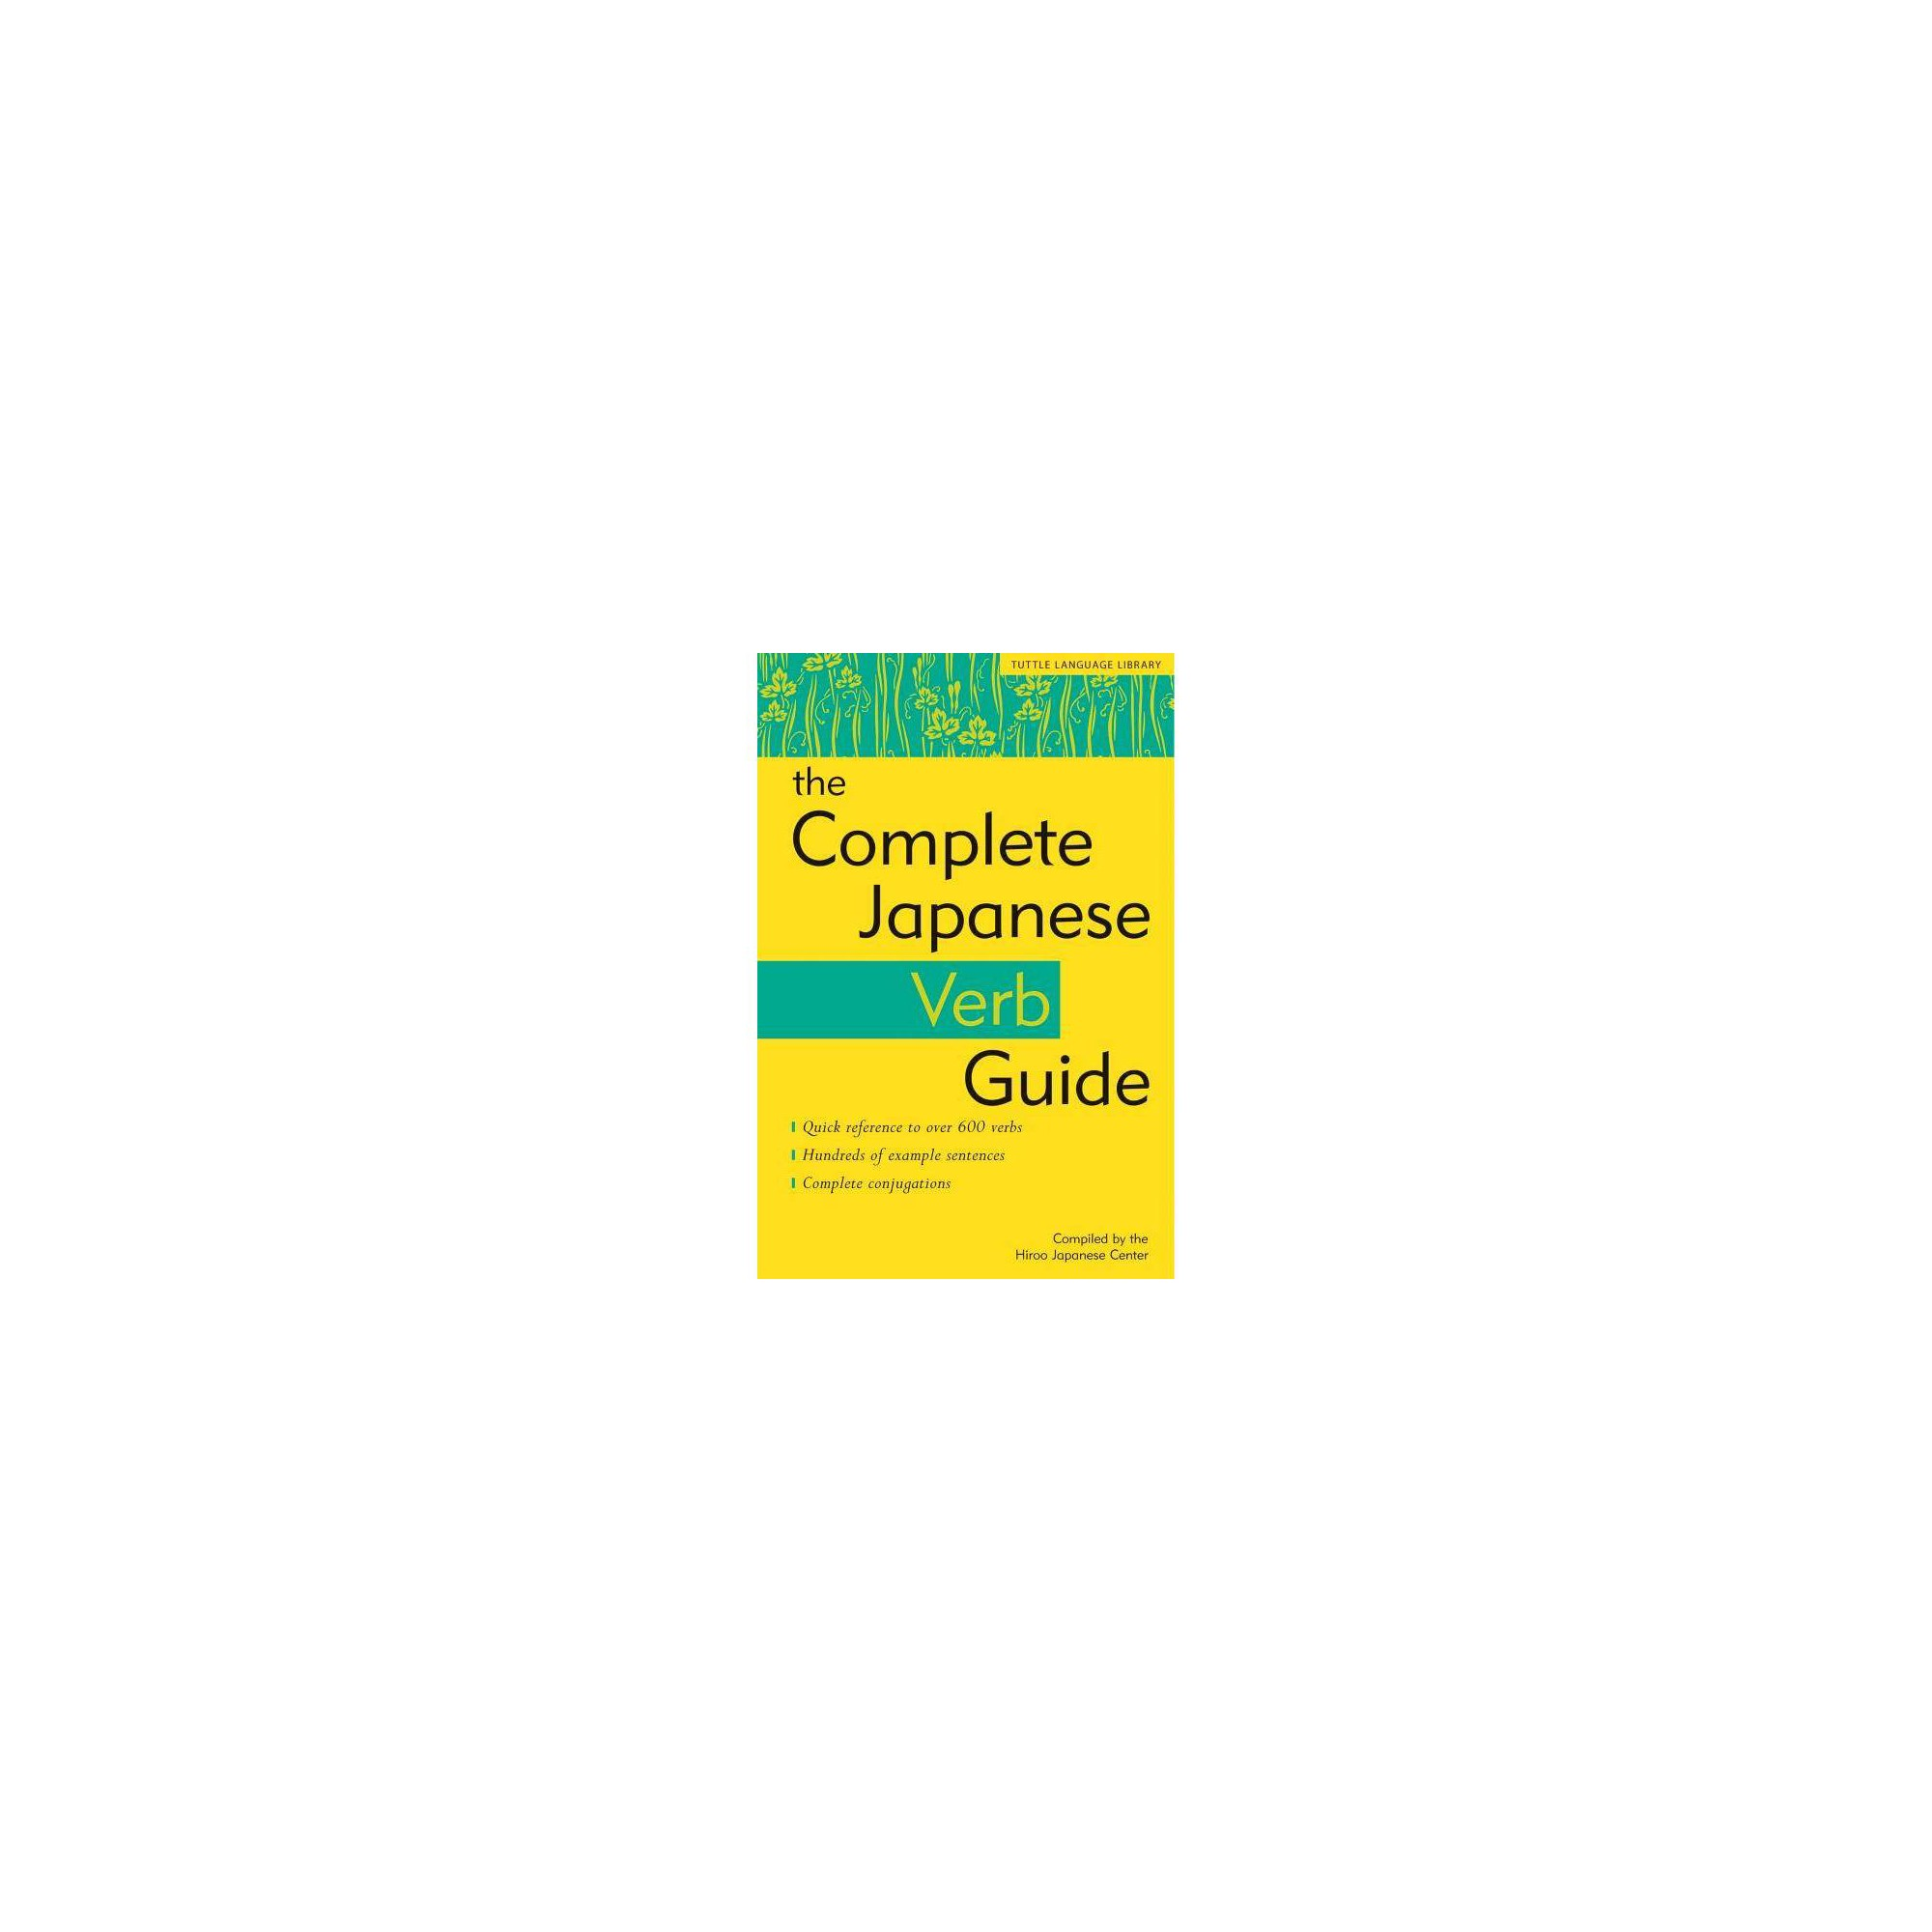 The Complete Japanese Verb Guide (Paperback) Japanese